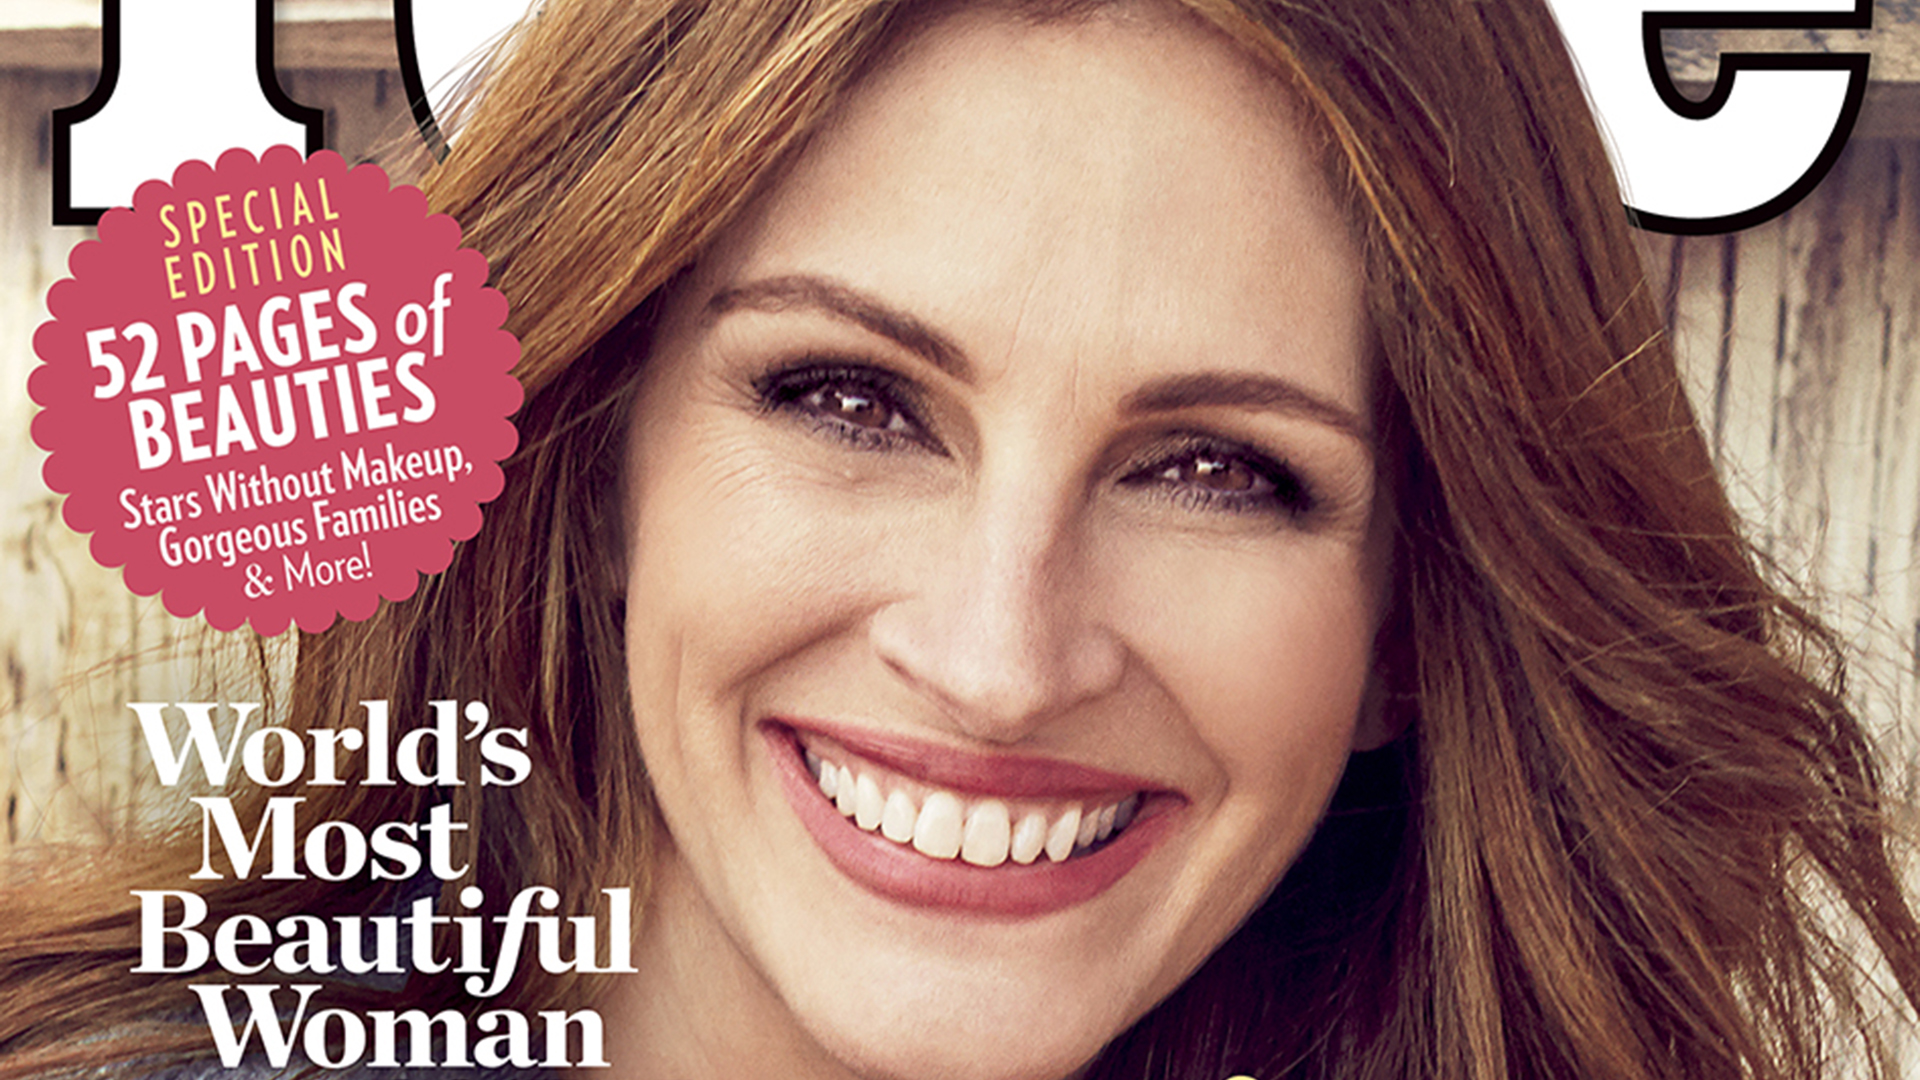 julia roberts is people 39 s most beautiful woman for 5th time. Black Bedroom Furniture Sets. Home Design Ideas